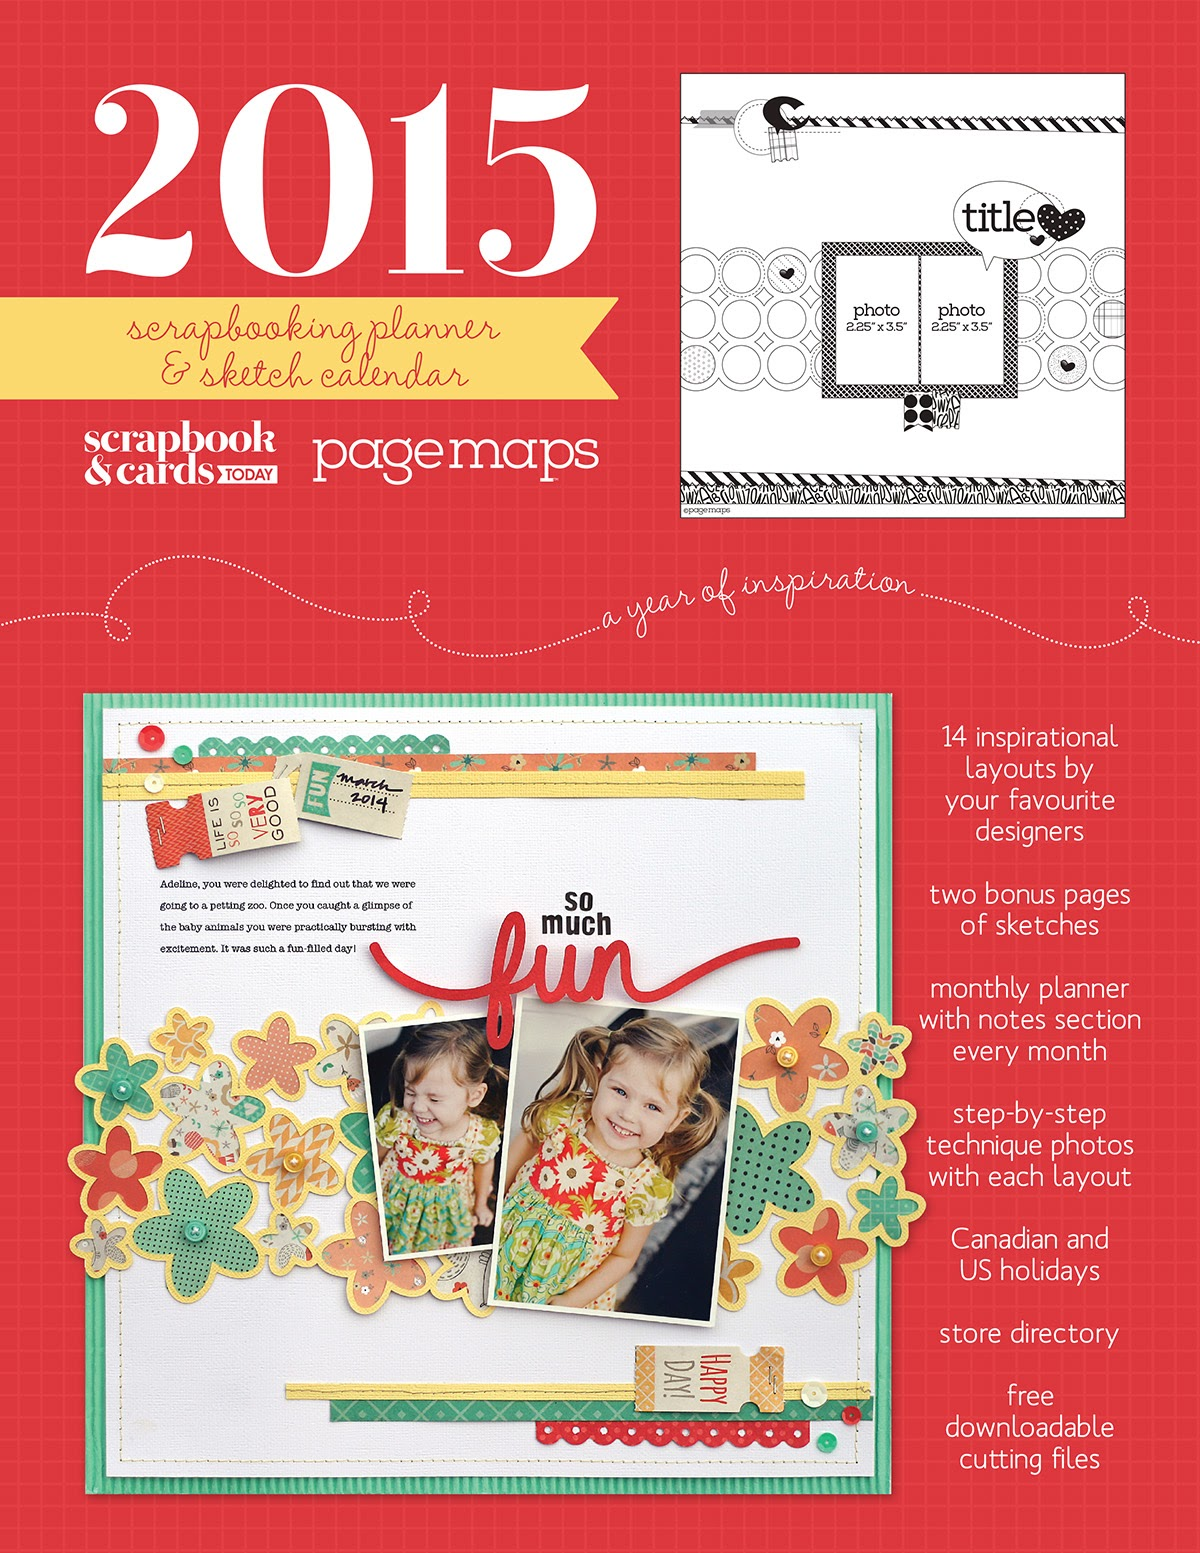 http://www.scrapbookandcards.com/2015-scrapbooking-planner-and-sketch-calendar